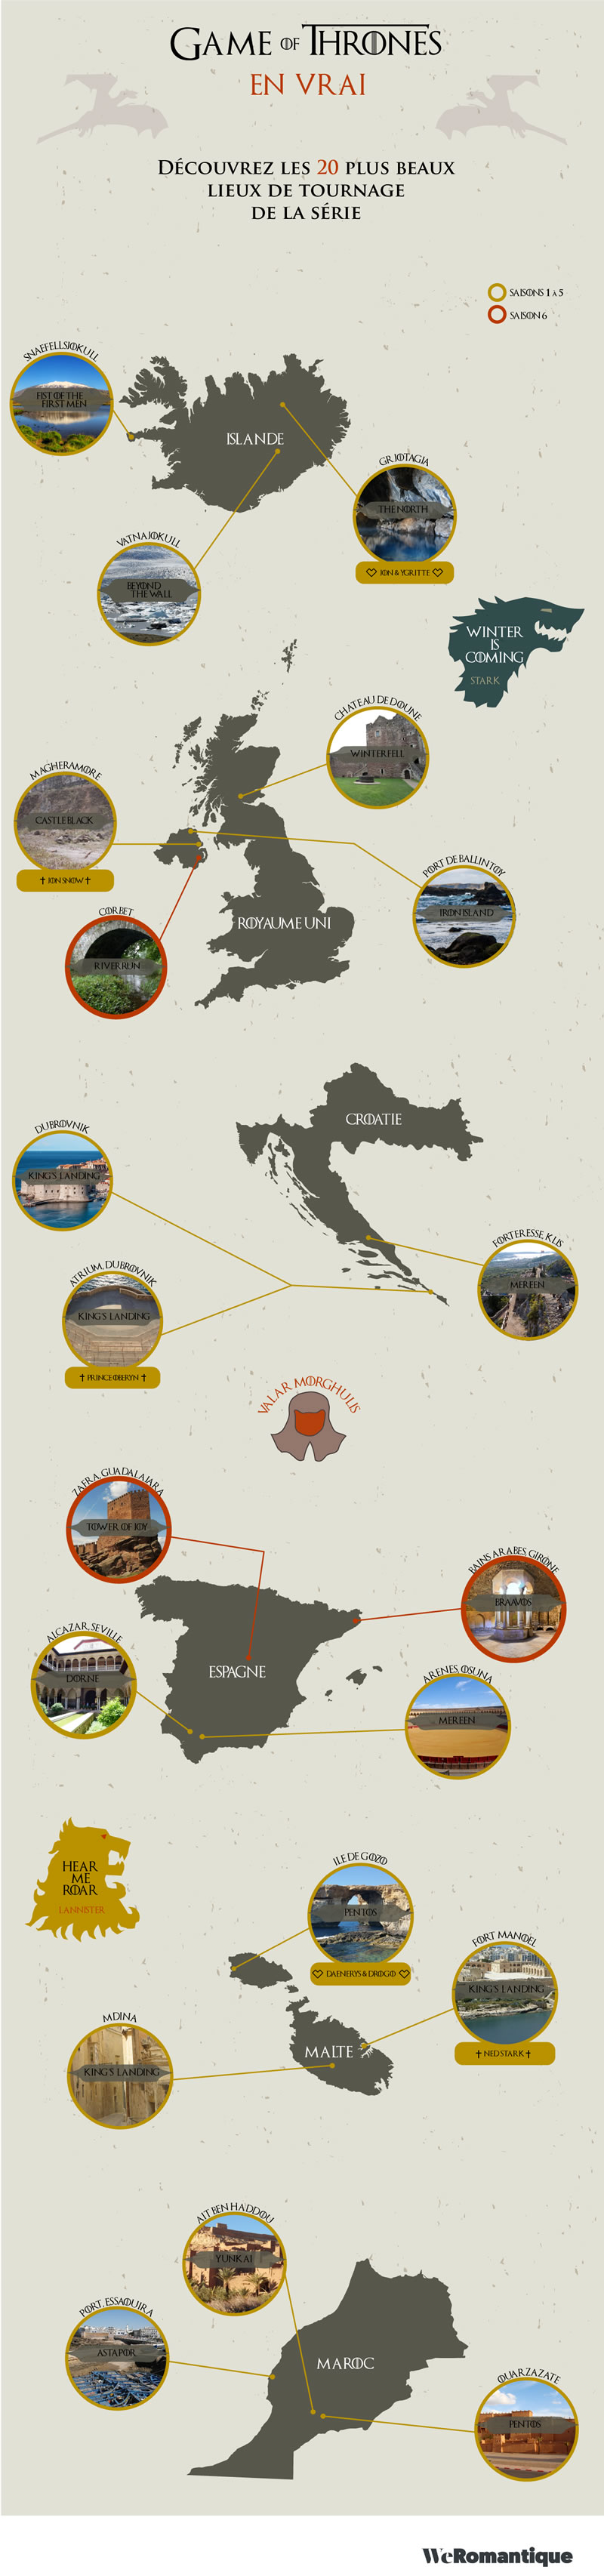 infographie-lieux-tournage-game-of-thrones